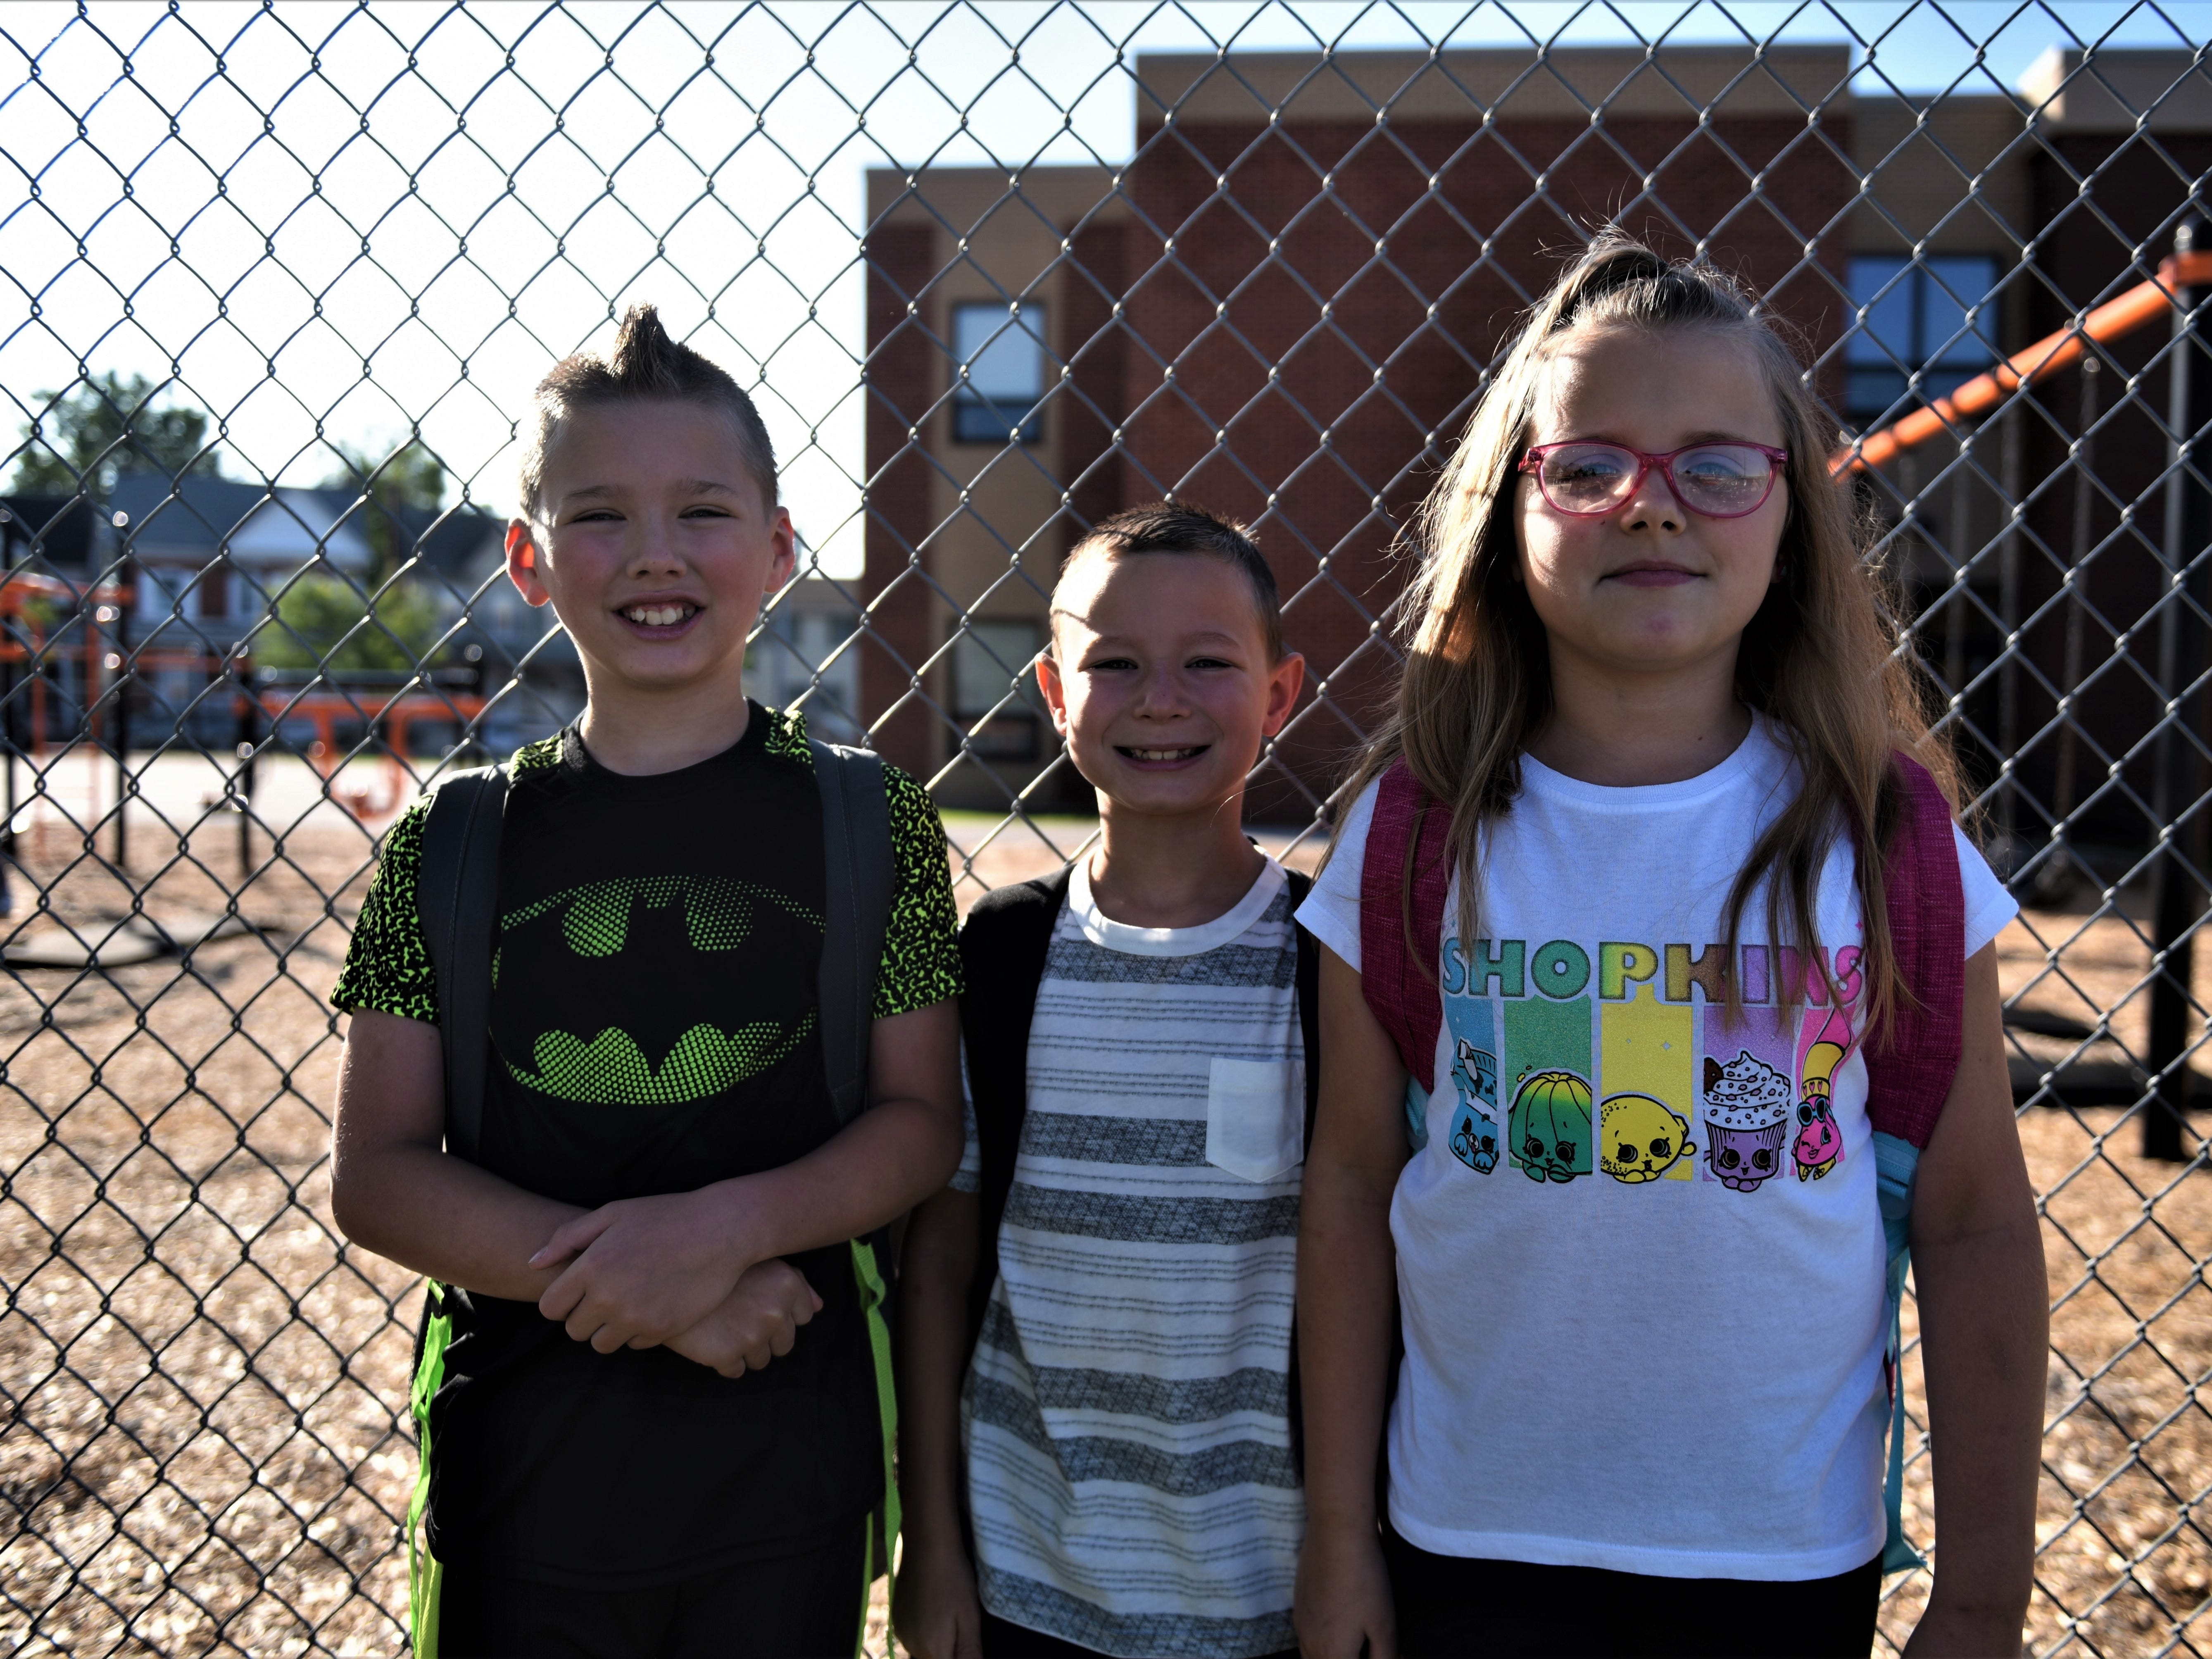 Robby Lauterbach, in the middle, is ready for the first day of first grade. And twins Shawn and Jada Dellinger are starting their first day of third grade at Hanover Street Elementary on Aug. 23.